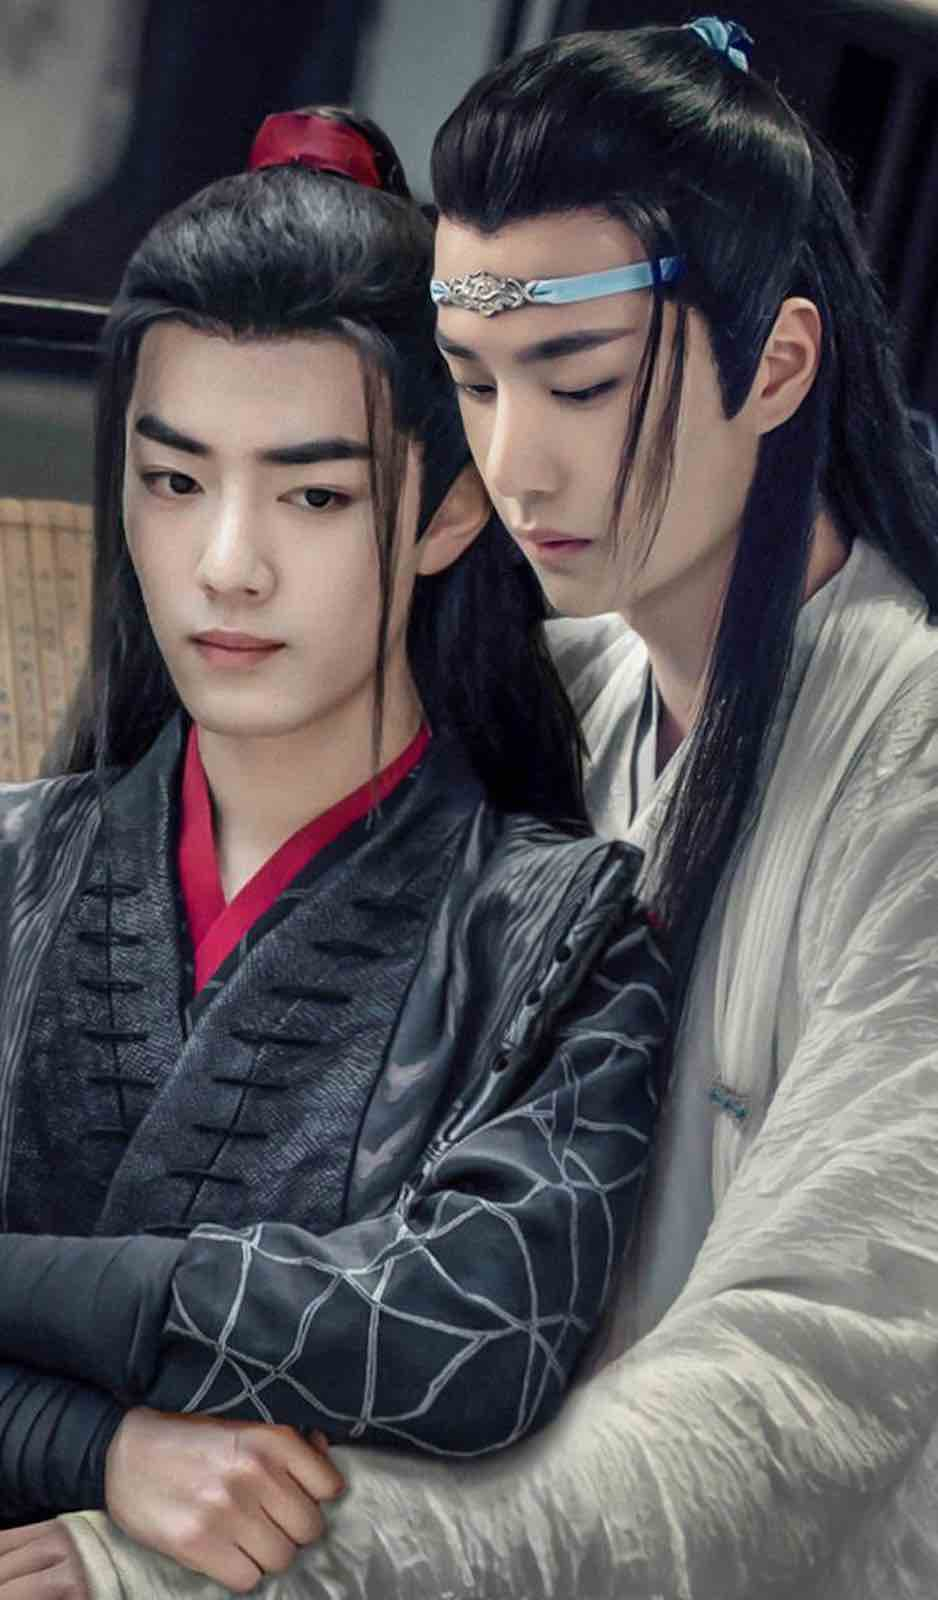 So come with us as we journey through 'The Untamed' and unpack all the times Lan Wangji would have said 'I love you' if Chinese censorship had allowed it.